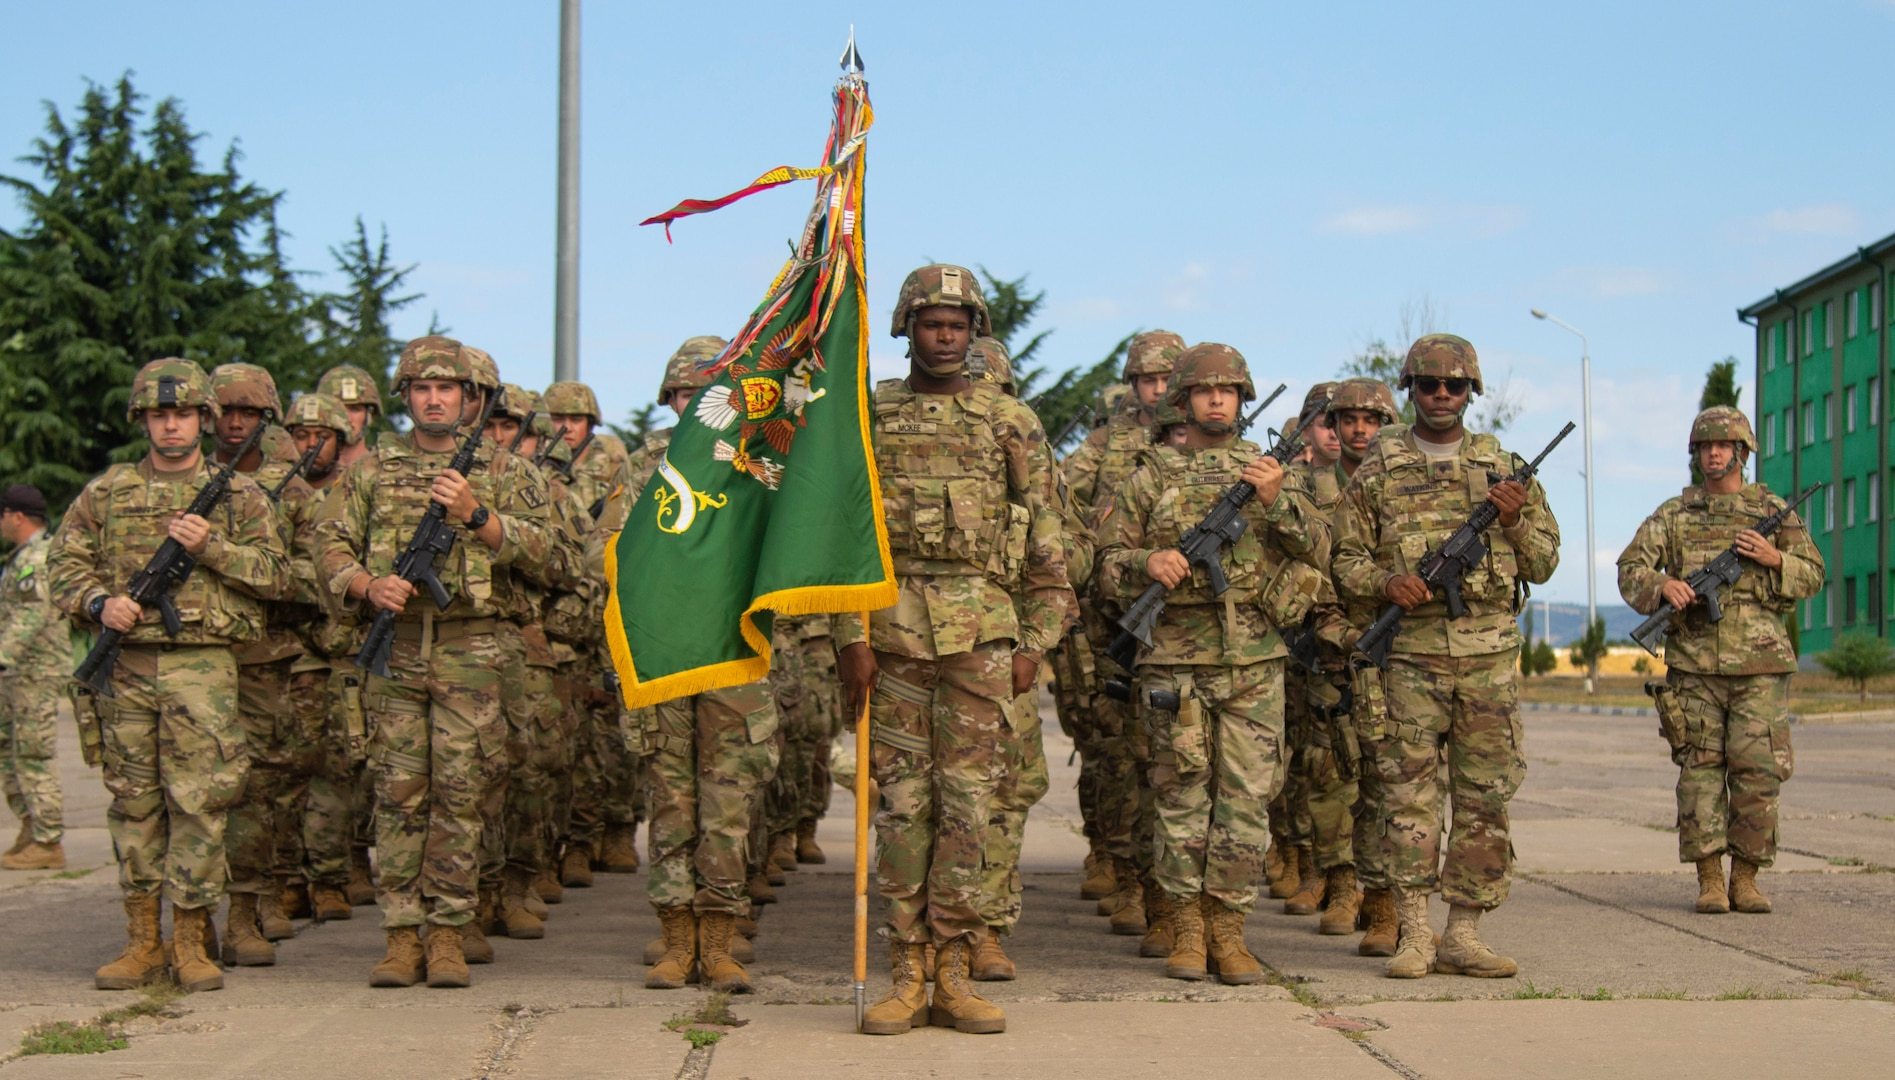 Members of the Georgia Army National Guard with the Monroe-based 178th Military Police Company stand in formation during the opening ceremony for Agile Spirit 19 at Vaziani Training Area on July 27, 2019. Participation in joint, multinational exercises like AgS19 enhances professional relationships and improves overall coordination with allies and partners during a crisis.